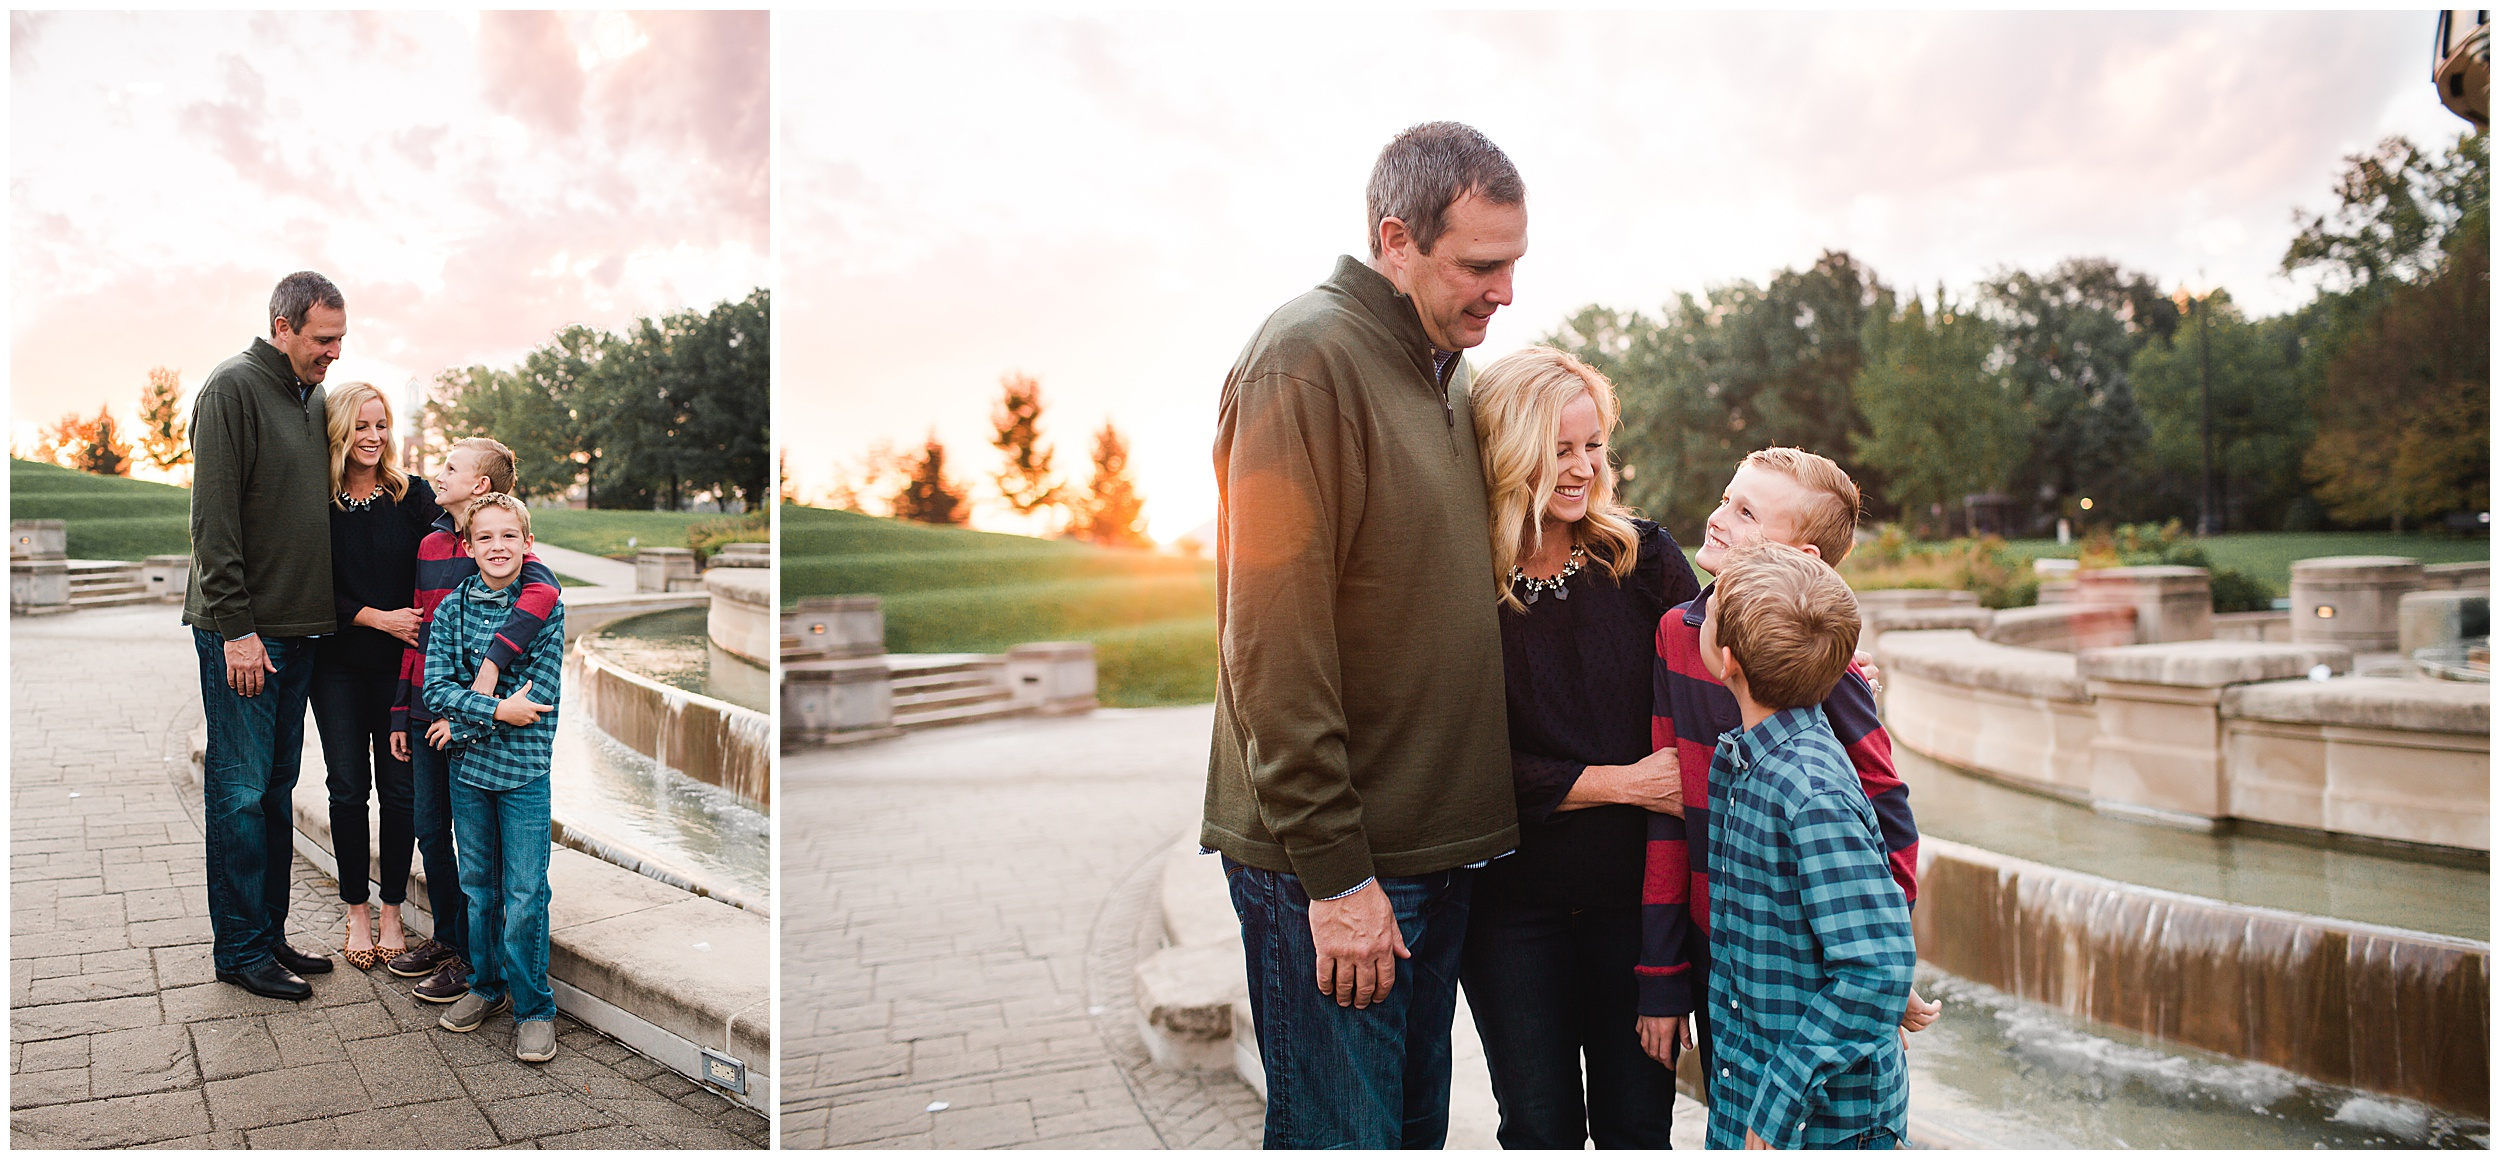 Indianapolis Family Photographer_Kelli White Photography_IG_0257.jpg